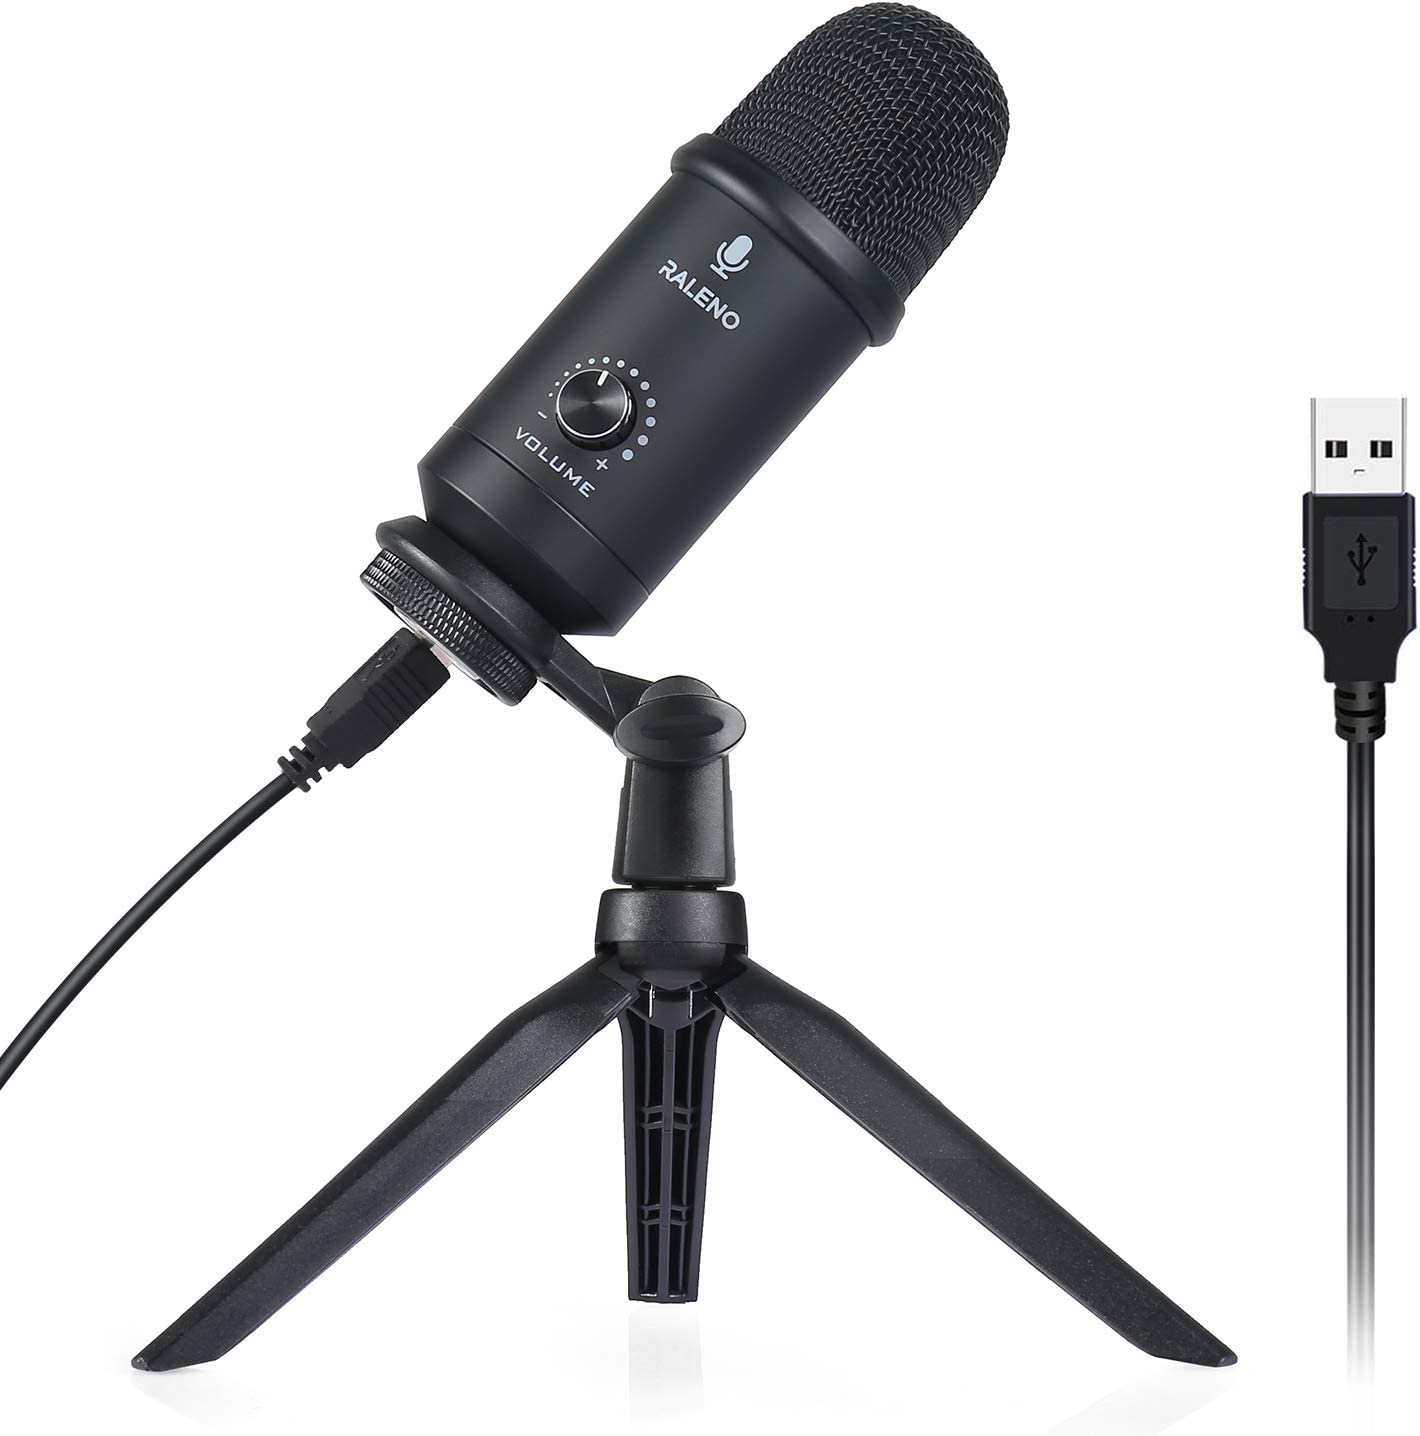 USB Microphone for Computer, RALENO Professional Studio Cardioid Condenser Mic Kit Compatible with Mac PC Laptop for Skype YouTube Teaching Gaming Recording.: Home Audio & Theater